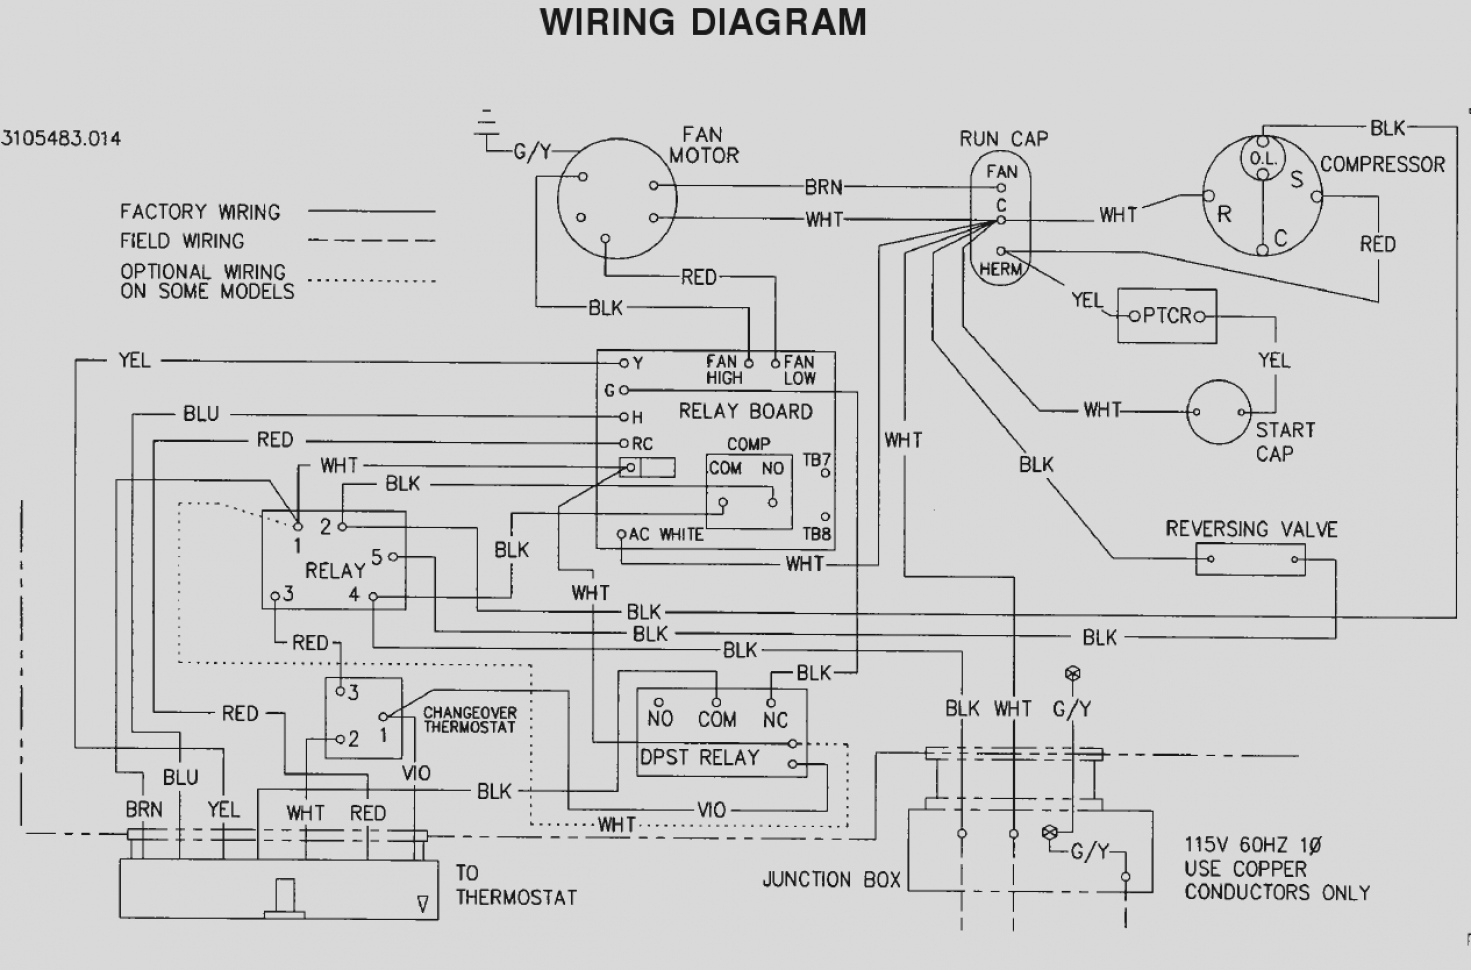 duo therm rv air conditioner wiring diagram free wiring. Black Bedroom Furniture Sets. Home Design Ideas